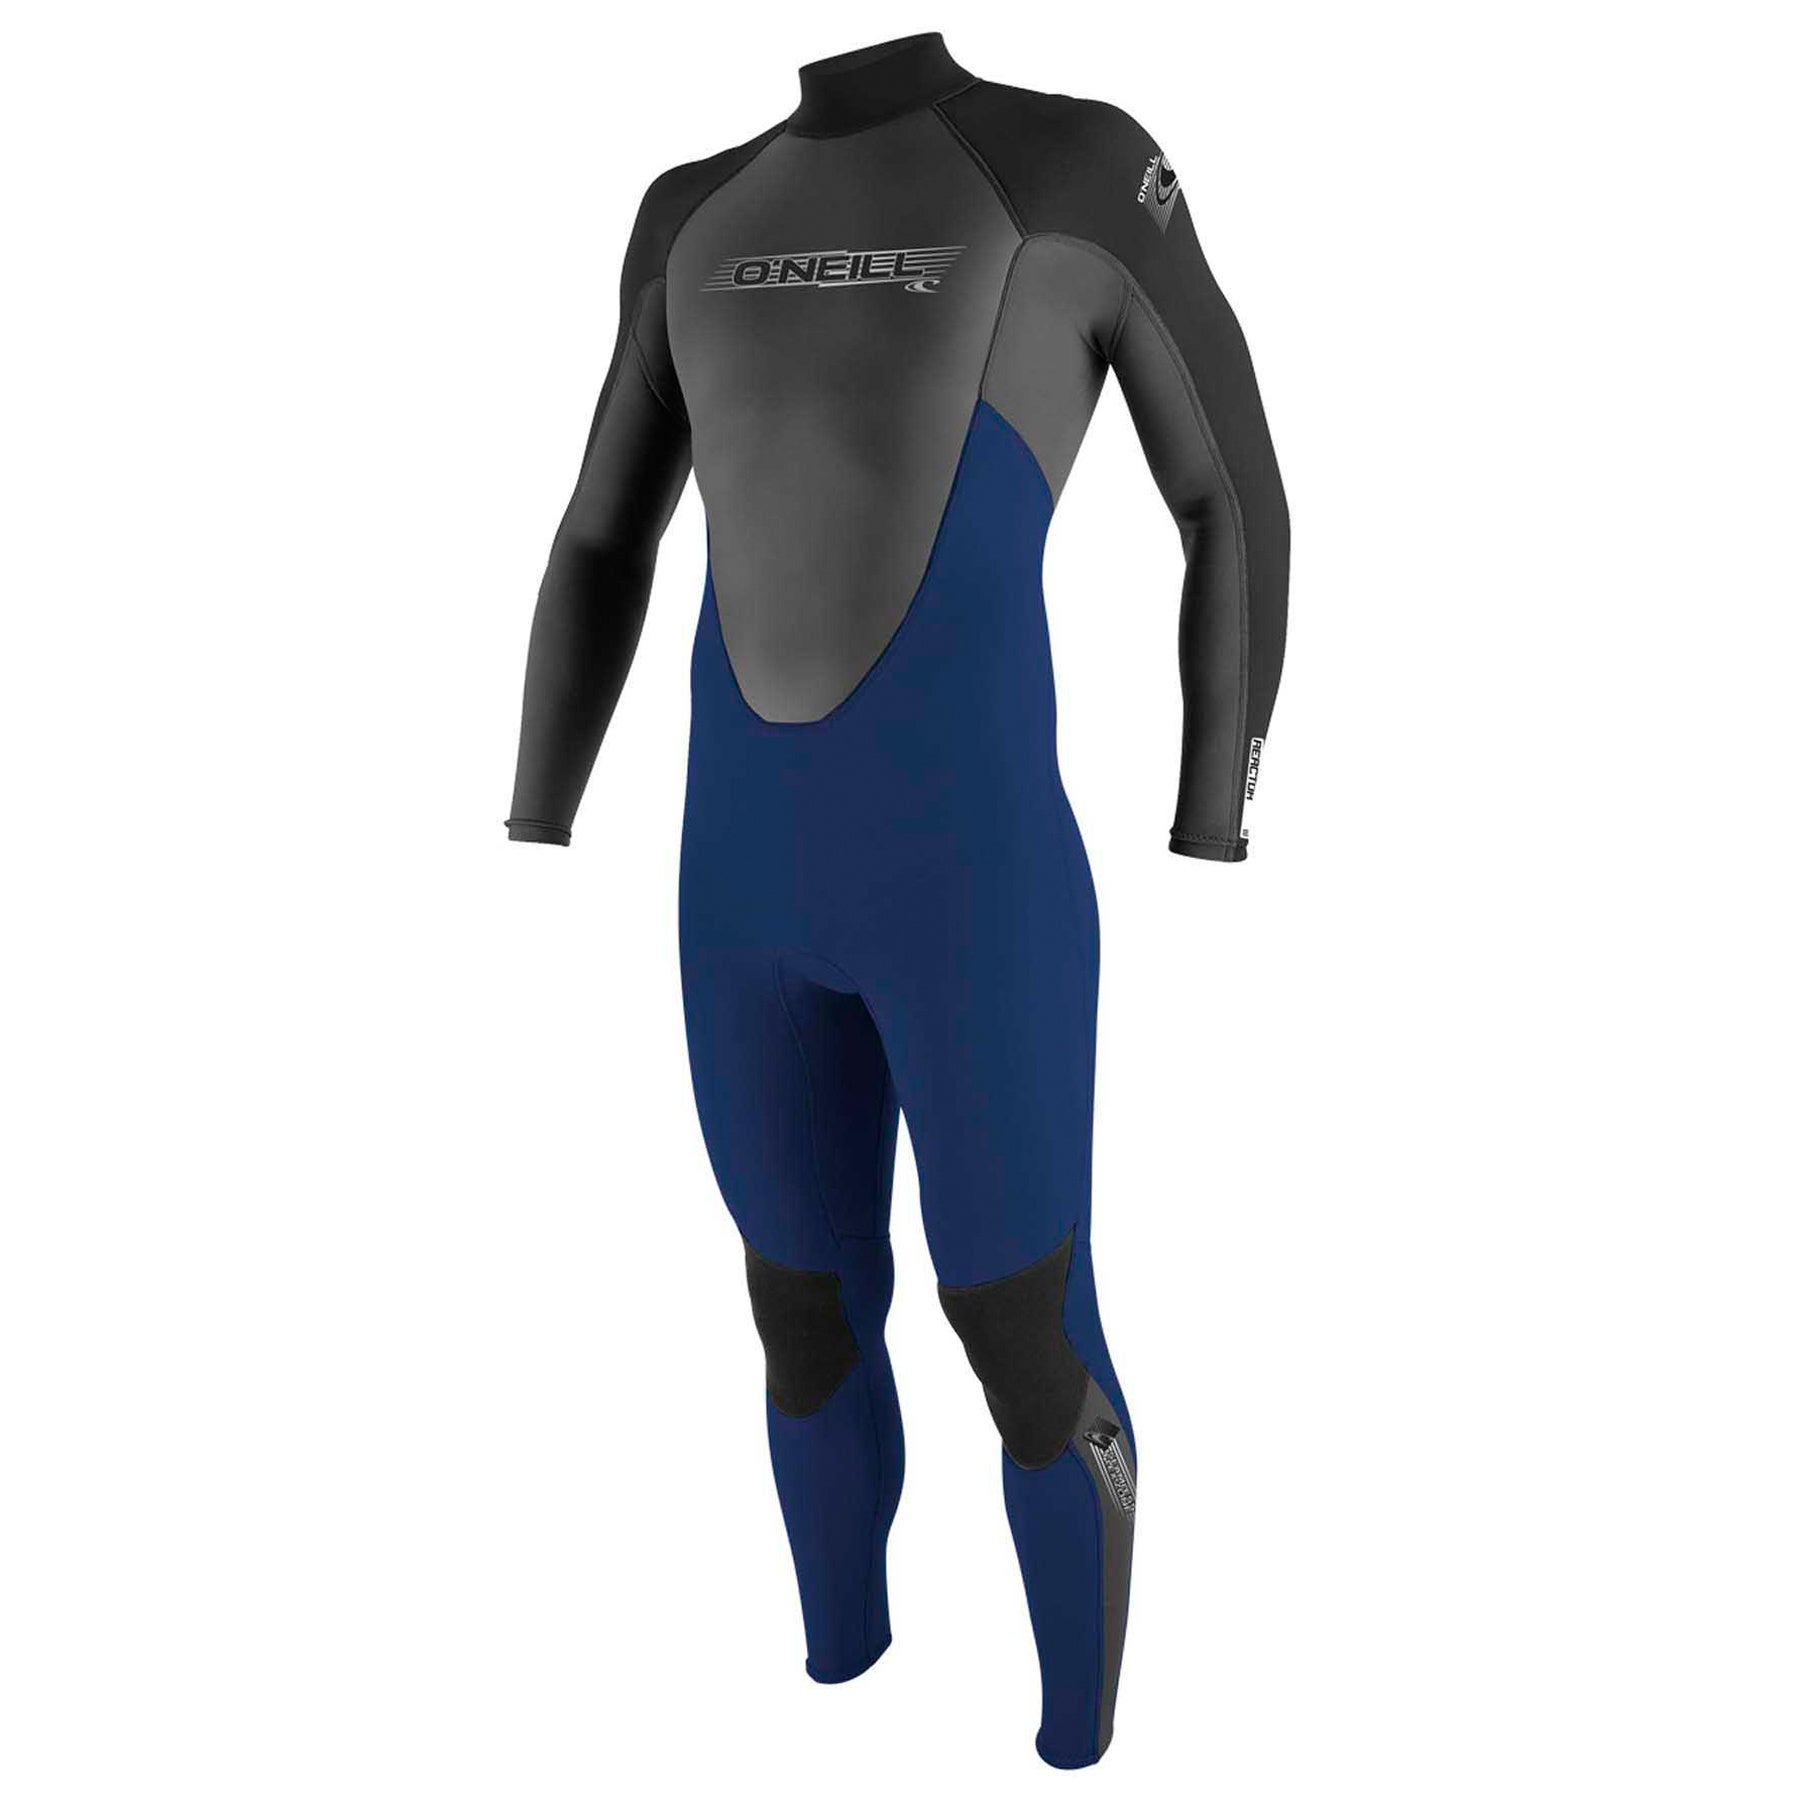 O Neill 3-2mm Reactor Back Zip Wetsuit - Navy/ Graphite/ Black